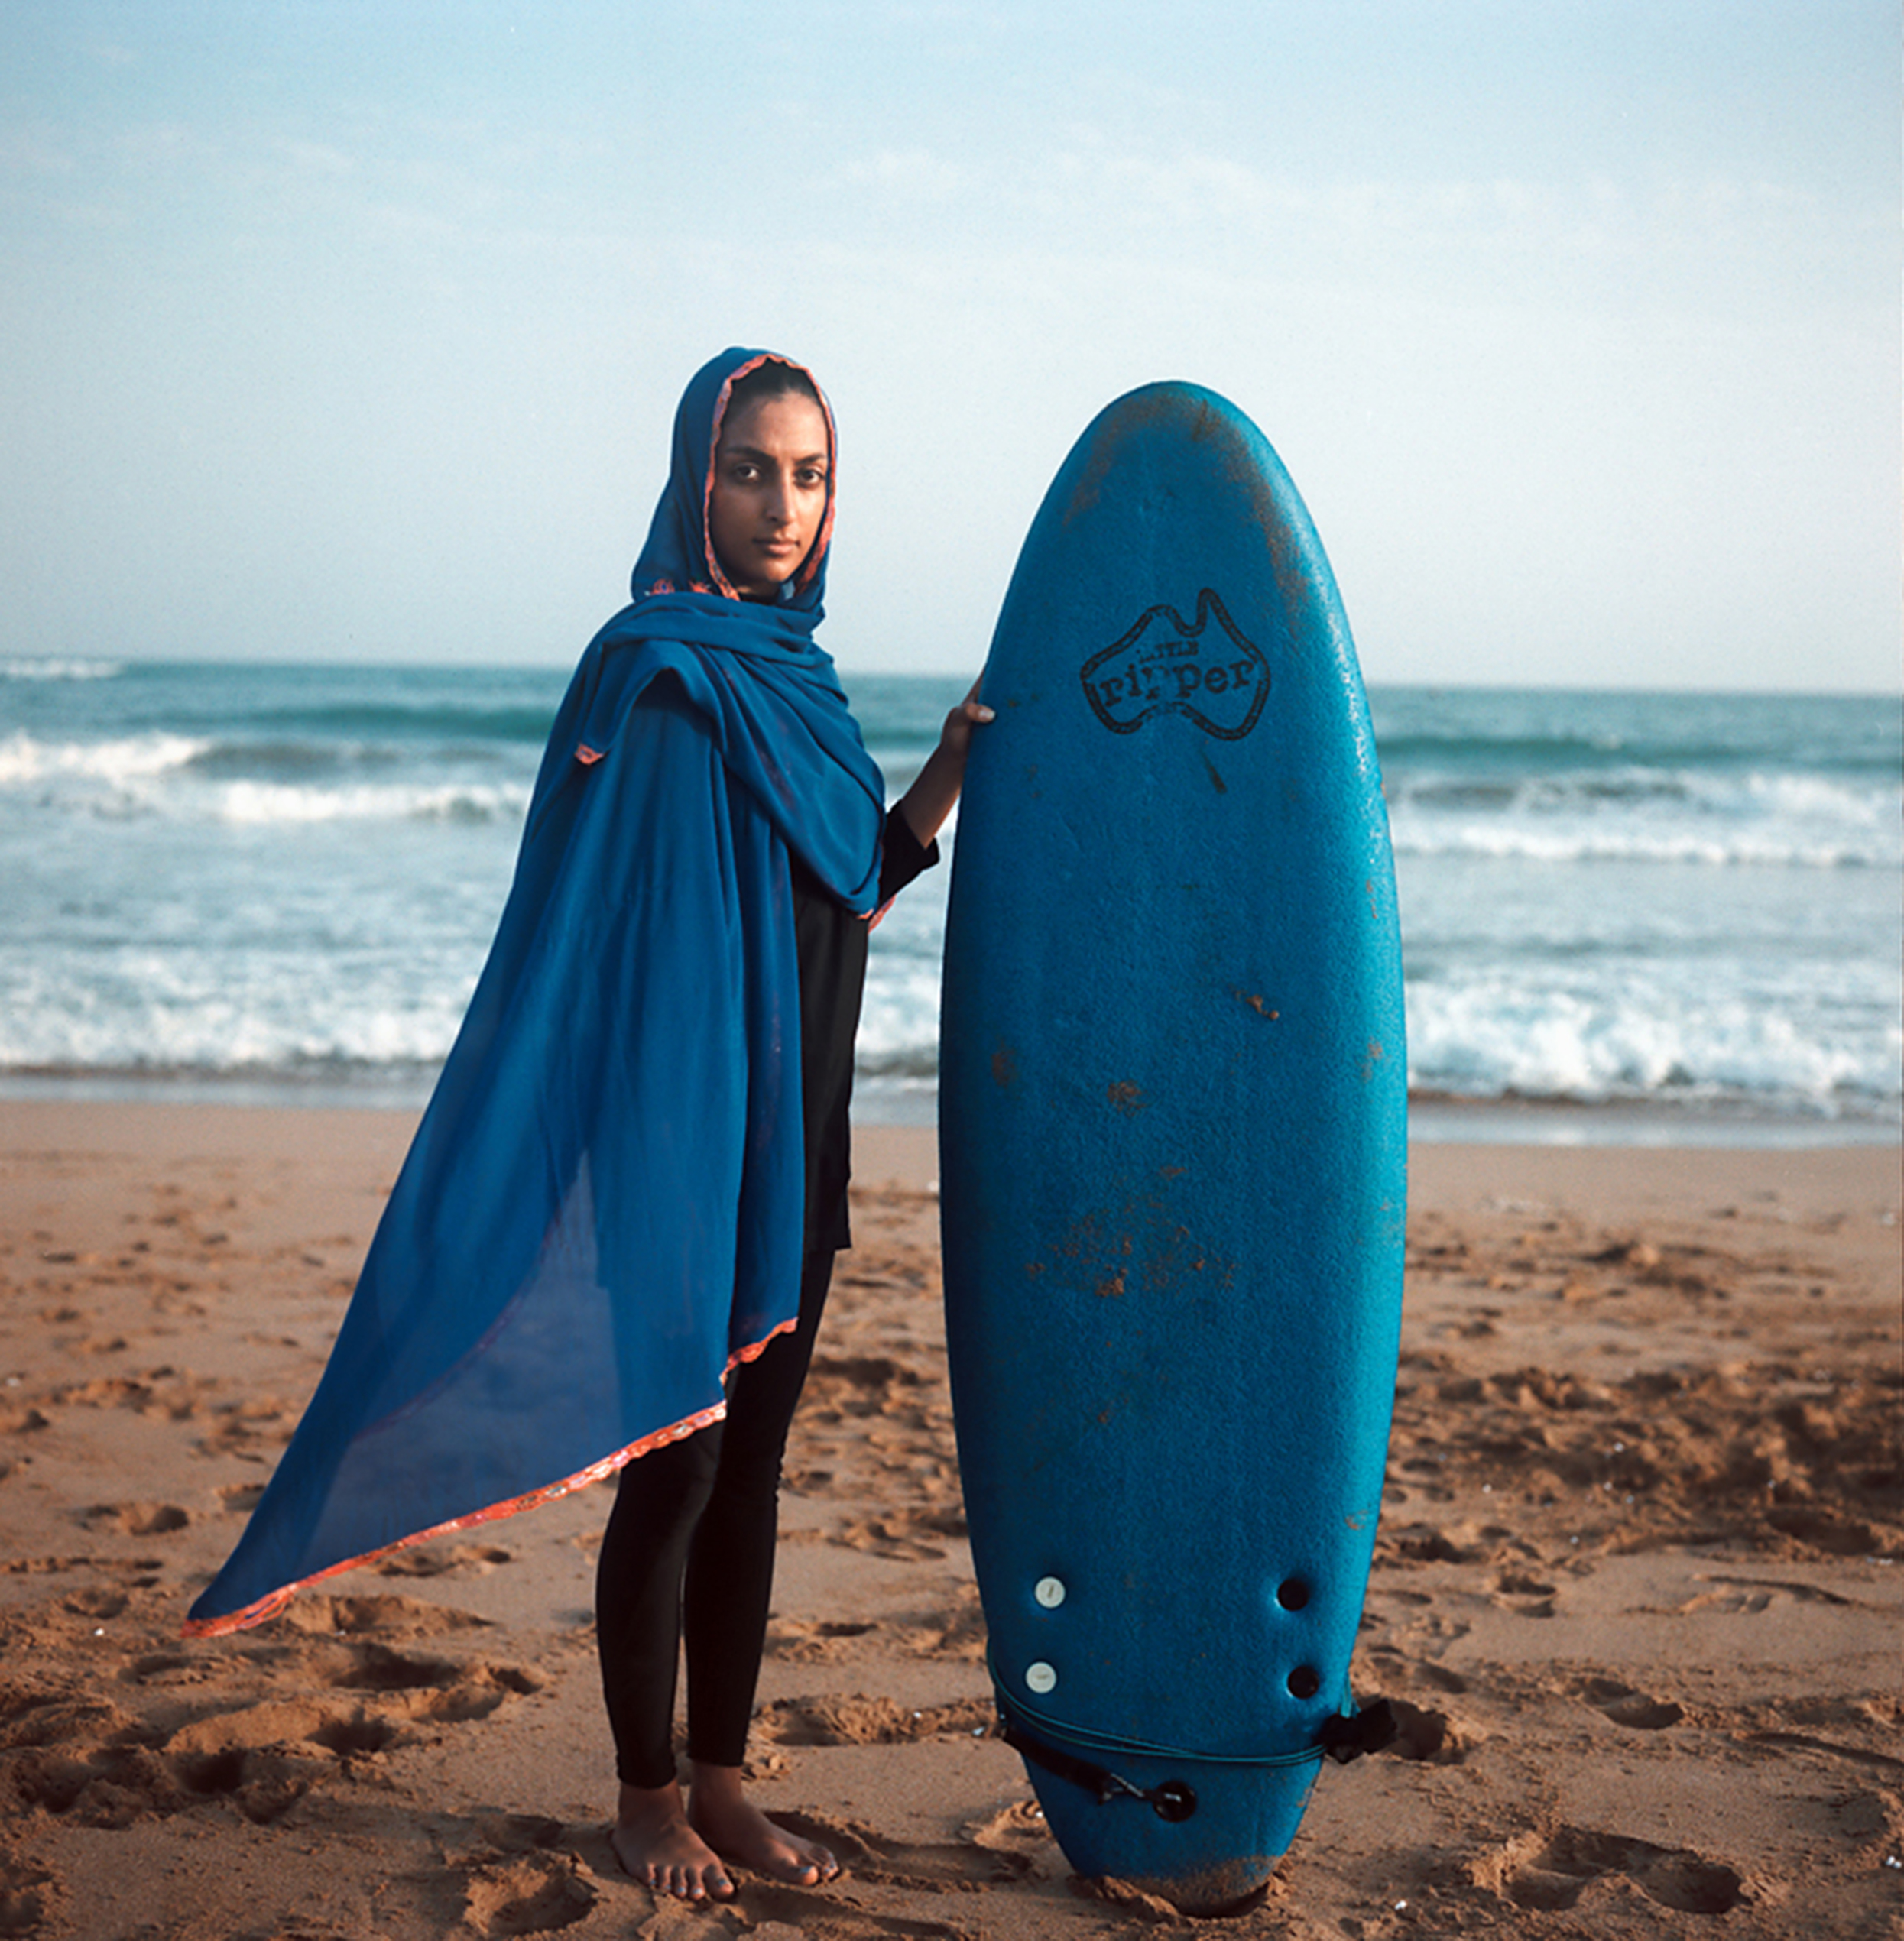 Giulia Frigieri Surfing Iran C41 Magazine My Spot Of Beauty 10